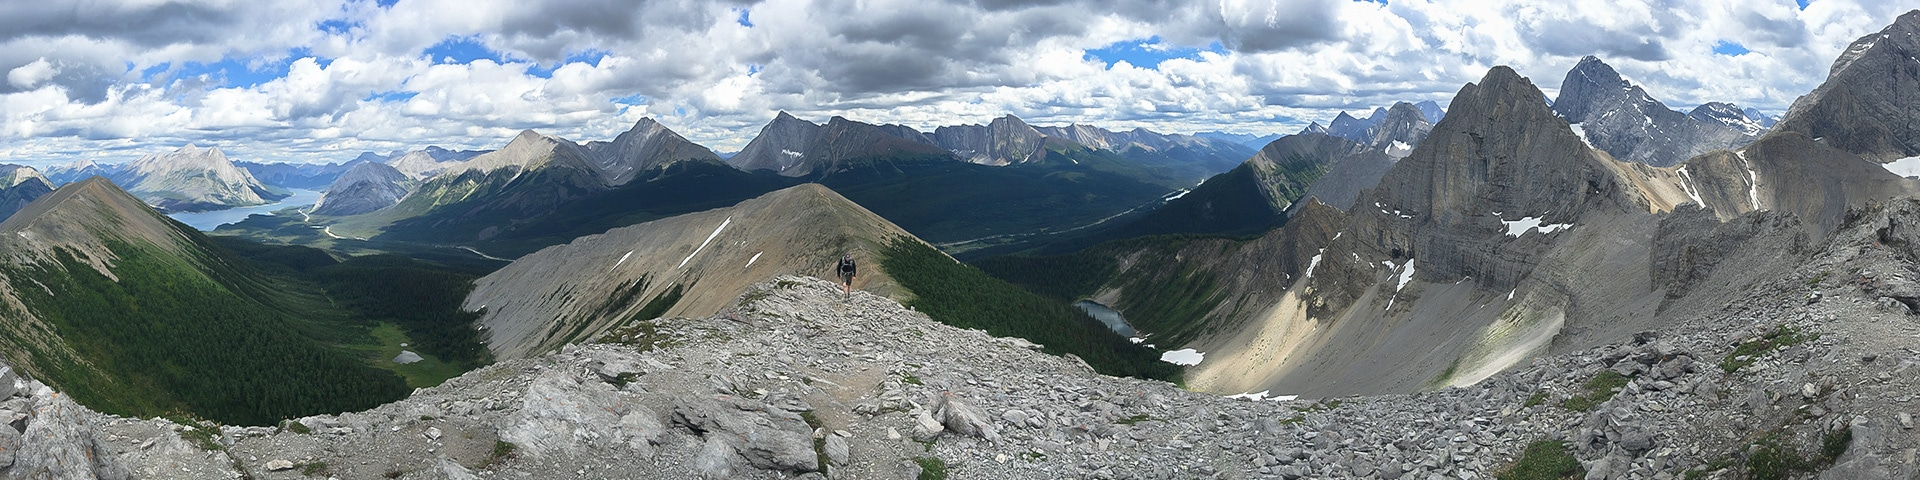 Panorama from the Tent Ridge Horseshoe hike from Smith-Dorrien Trail in Kananaskis near Canmore